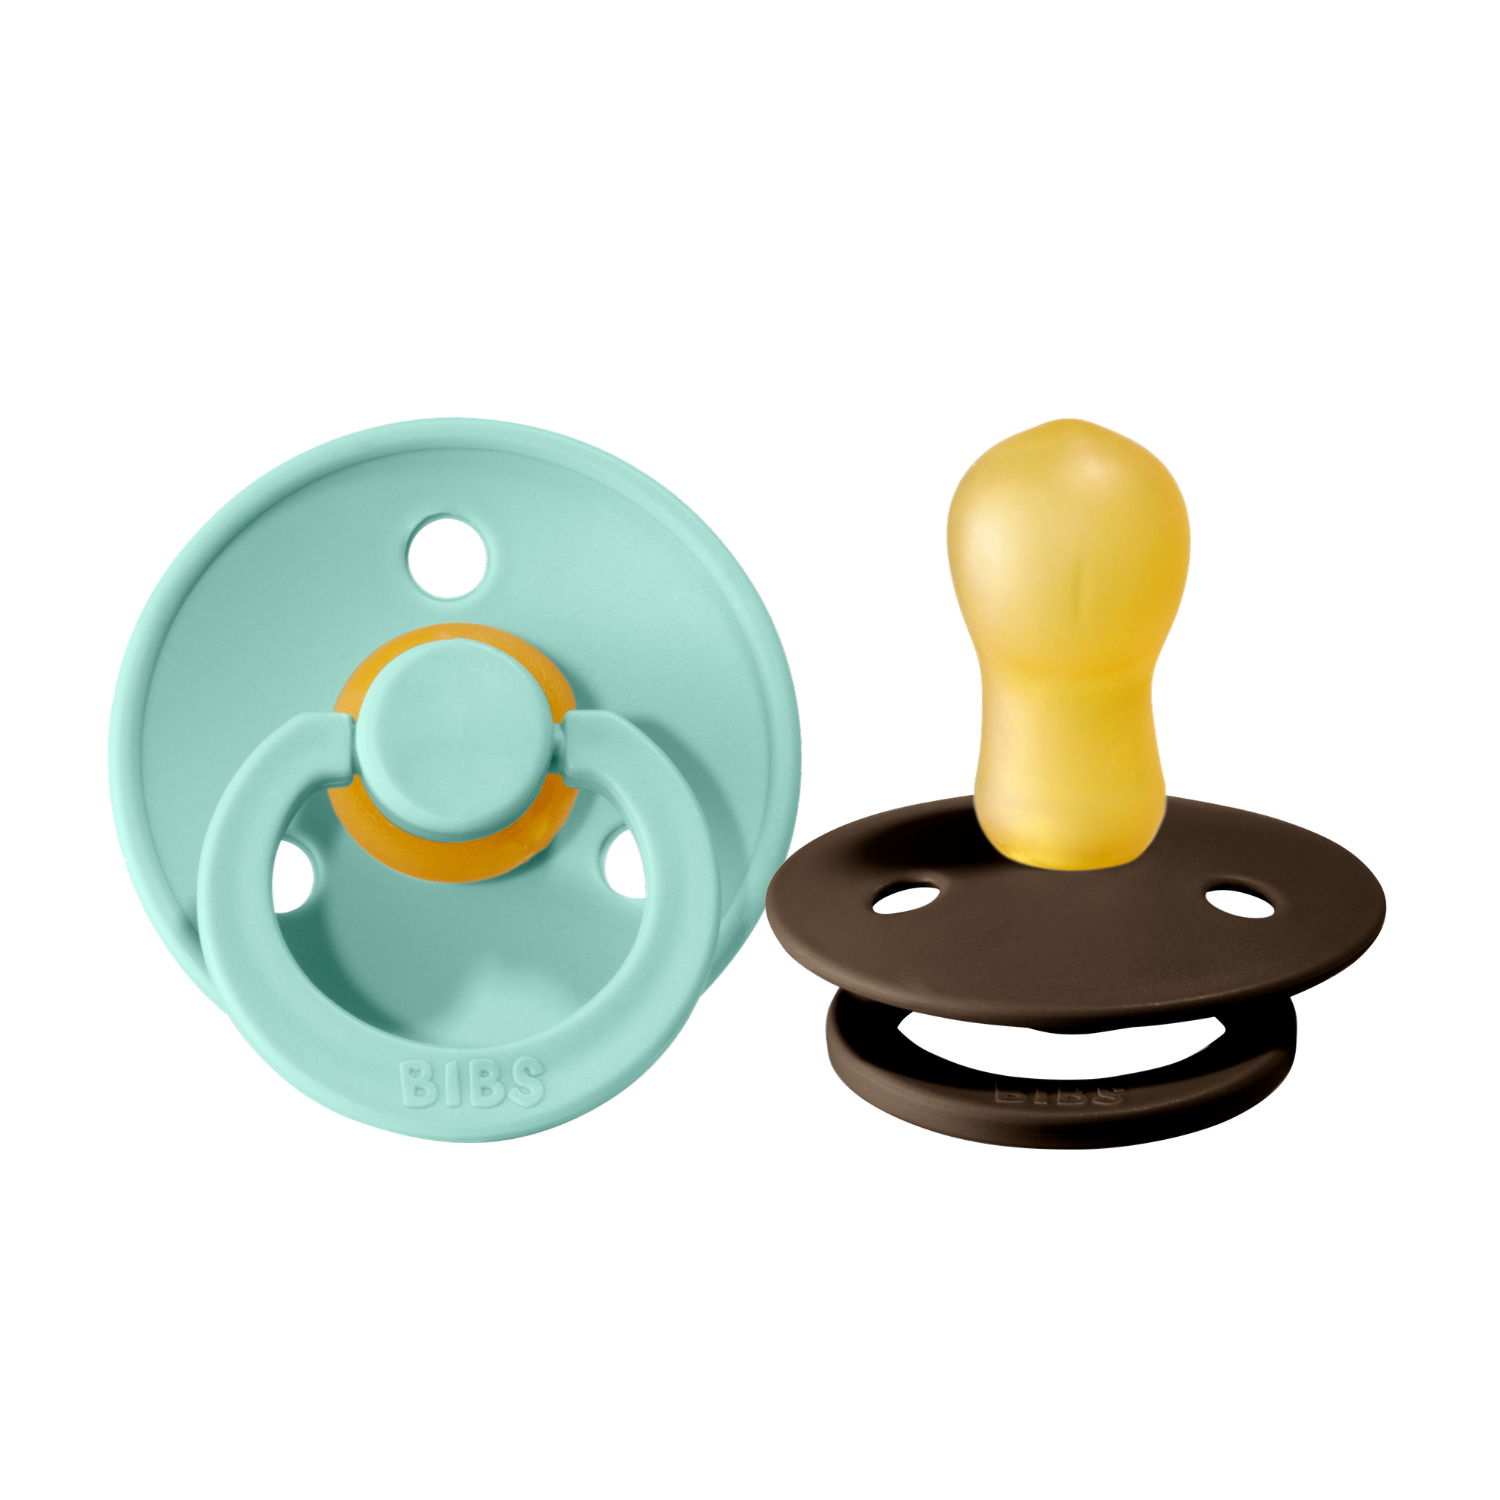 Bibs pacifier +18M 2-pack mint + chocolate